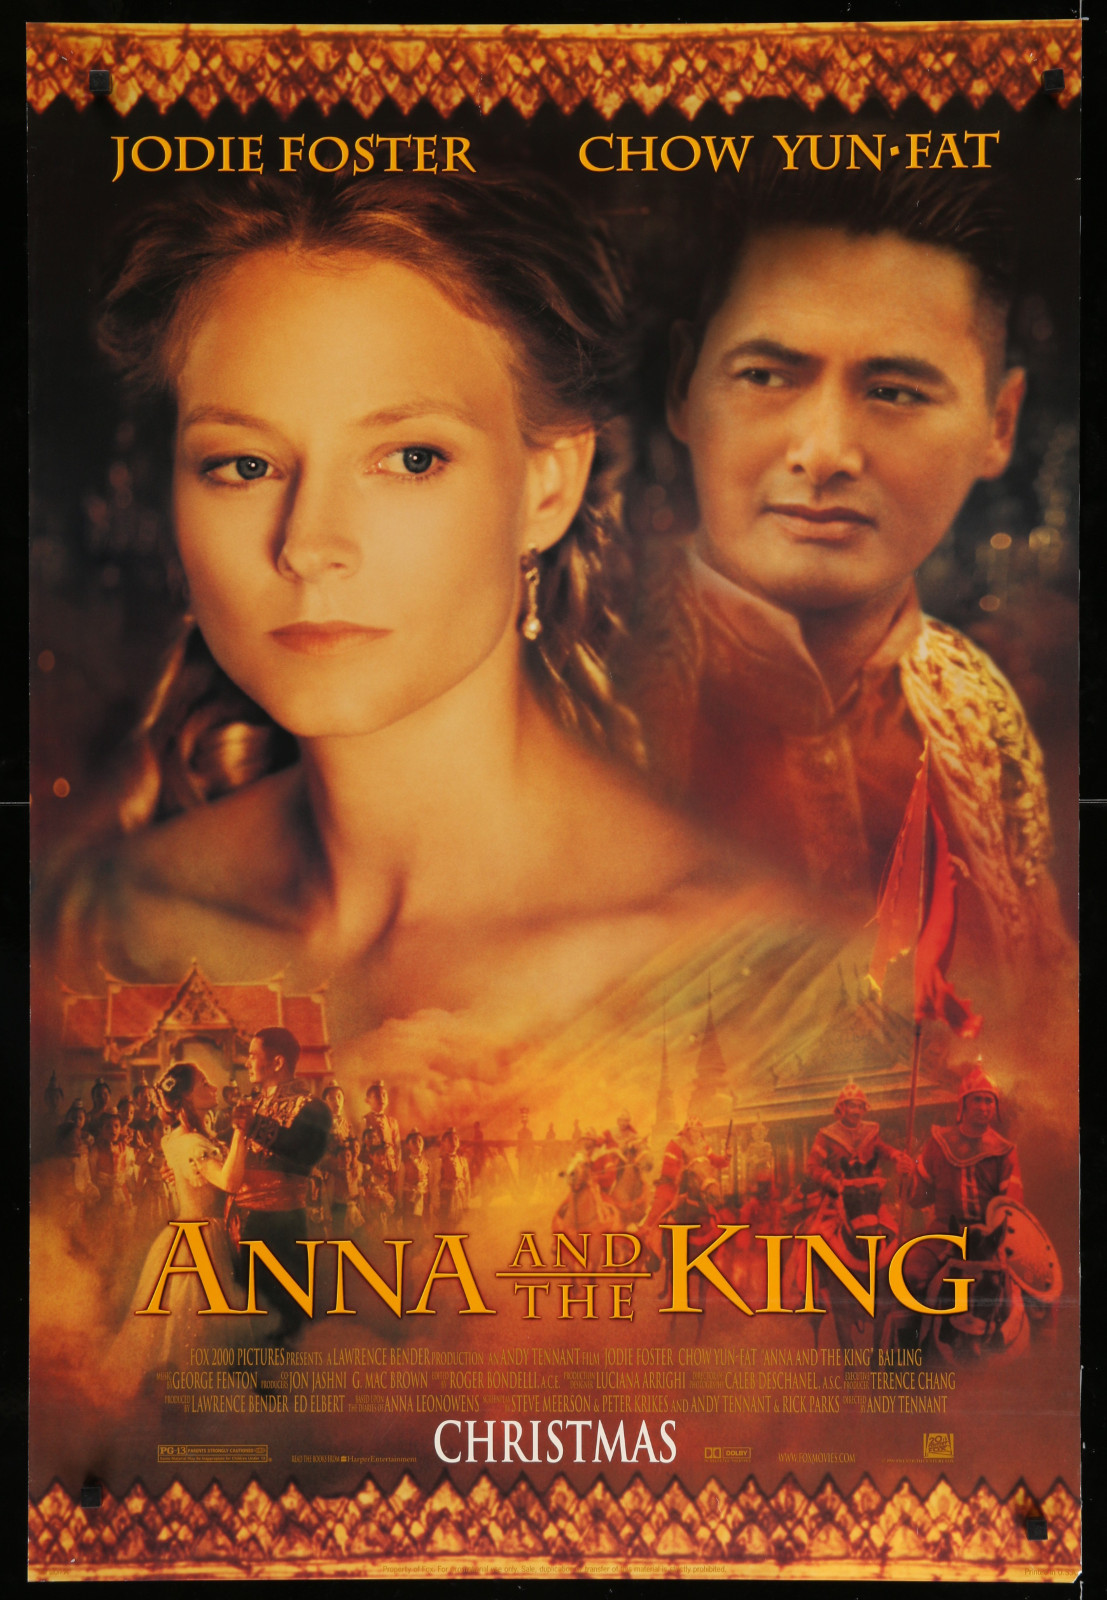 Anna And The King 2A393 A Part Of A Lot 23 Unfolded Mostly Double-Sided 27X40 One-Sheets '90S Great Movie Images!